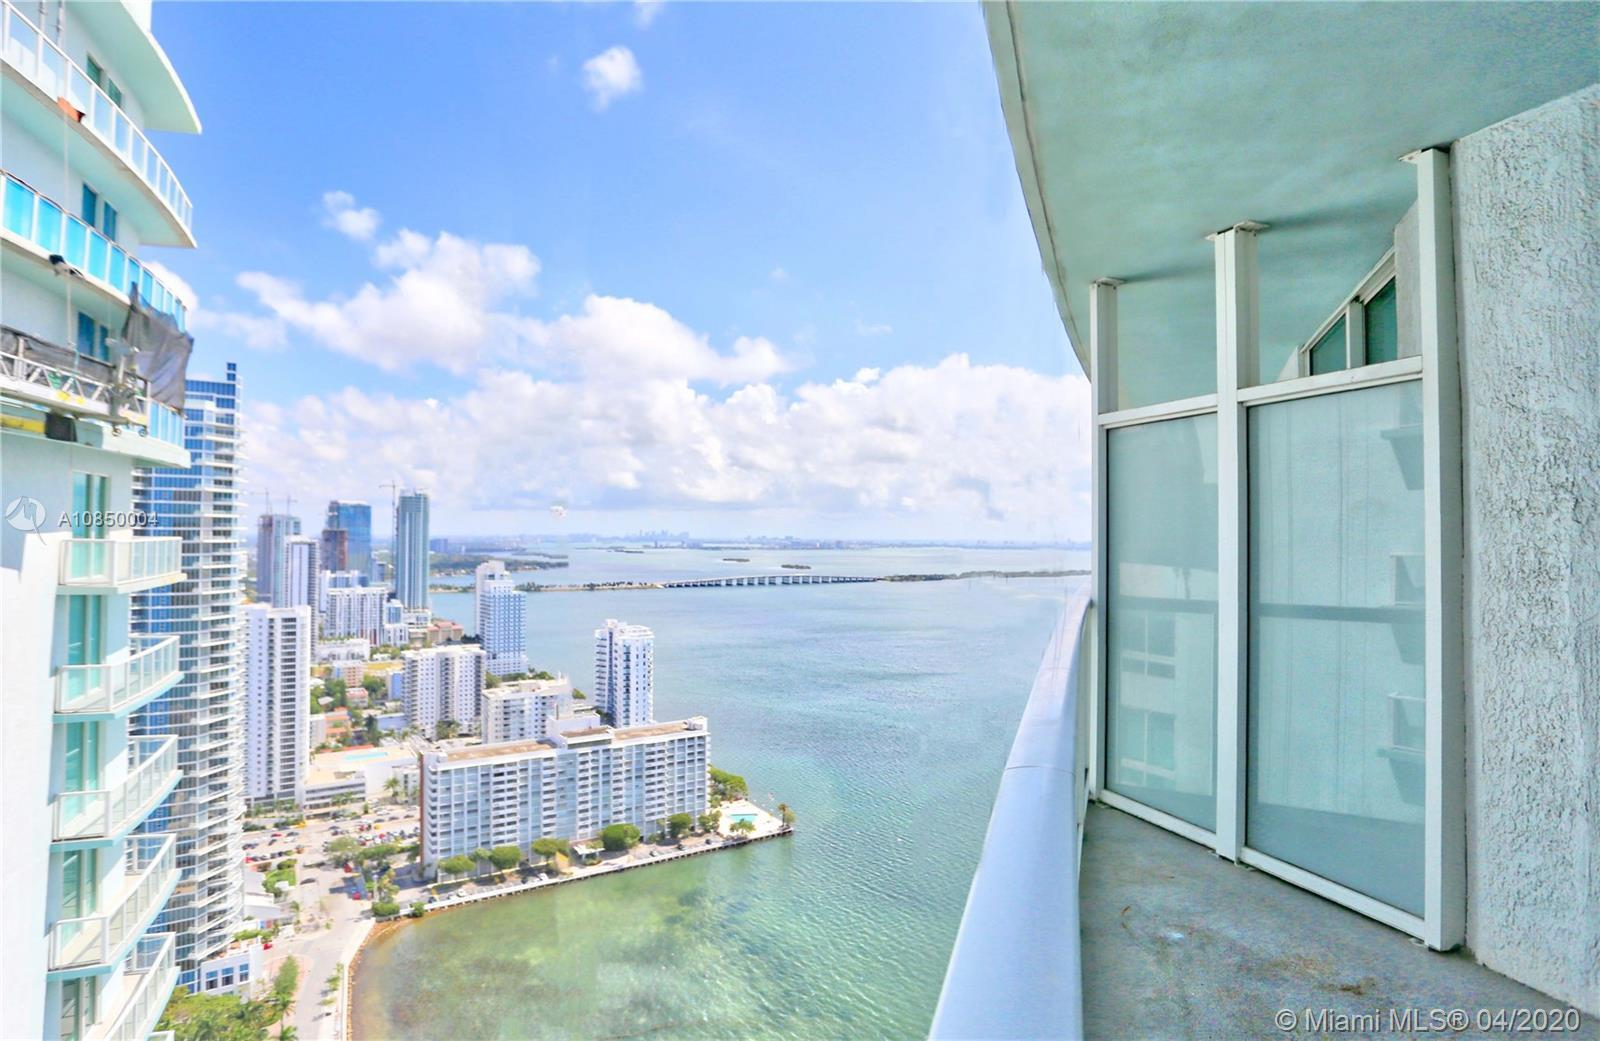 Amazing Bay view in this 1 bedroom /1 bath unit at Quantum on the Bay. European kitchen cabinets, Wh